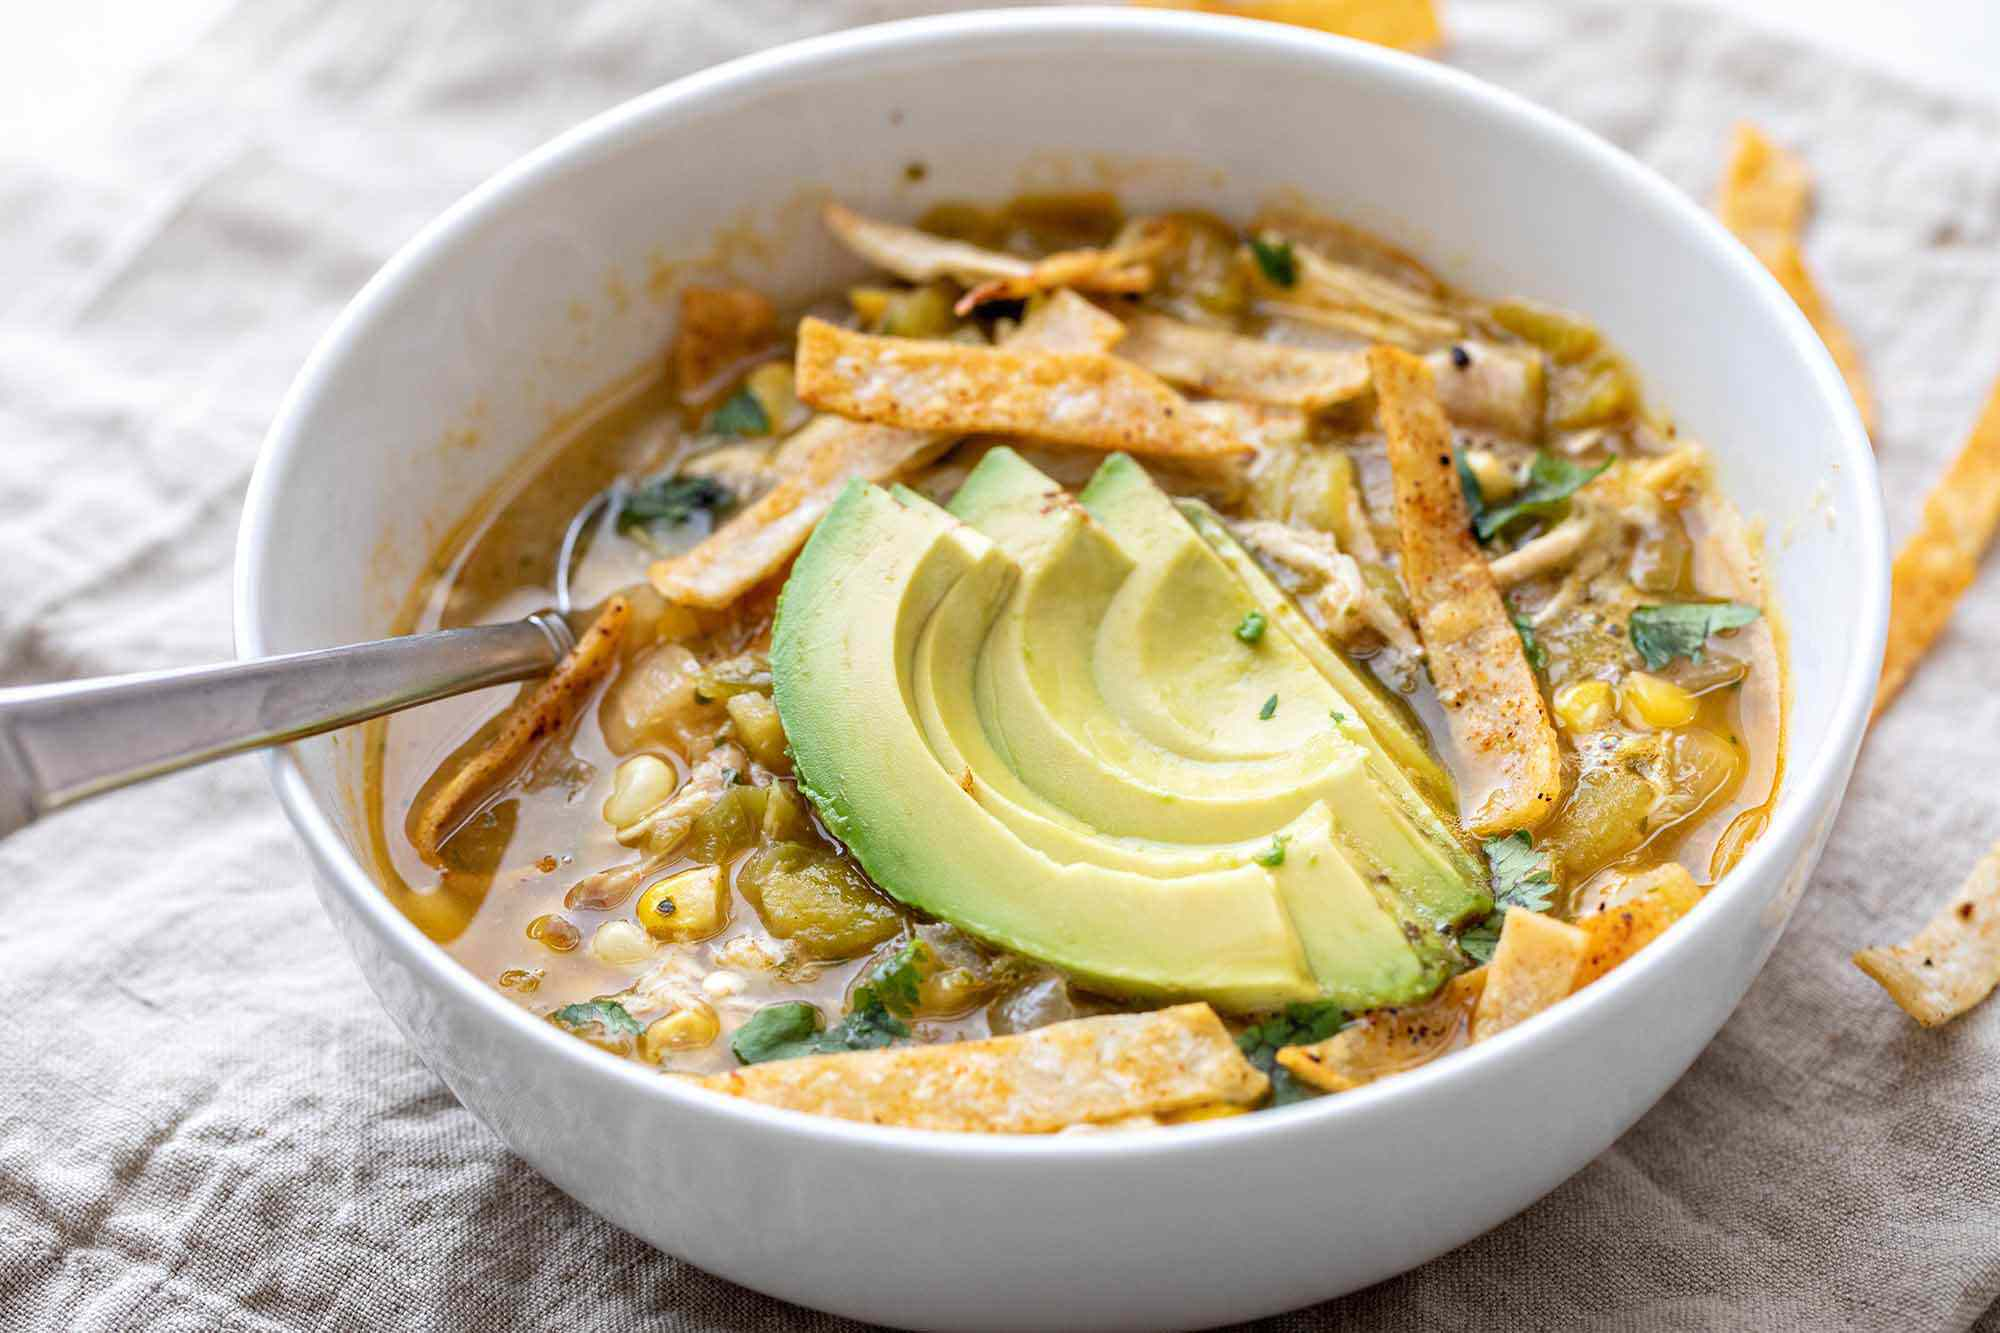 Green Chicken Chili recipe made in the slow cooker